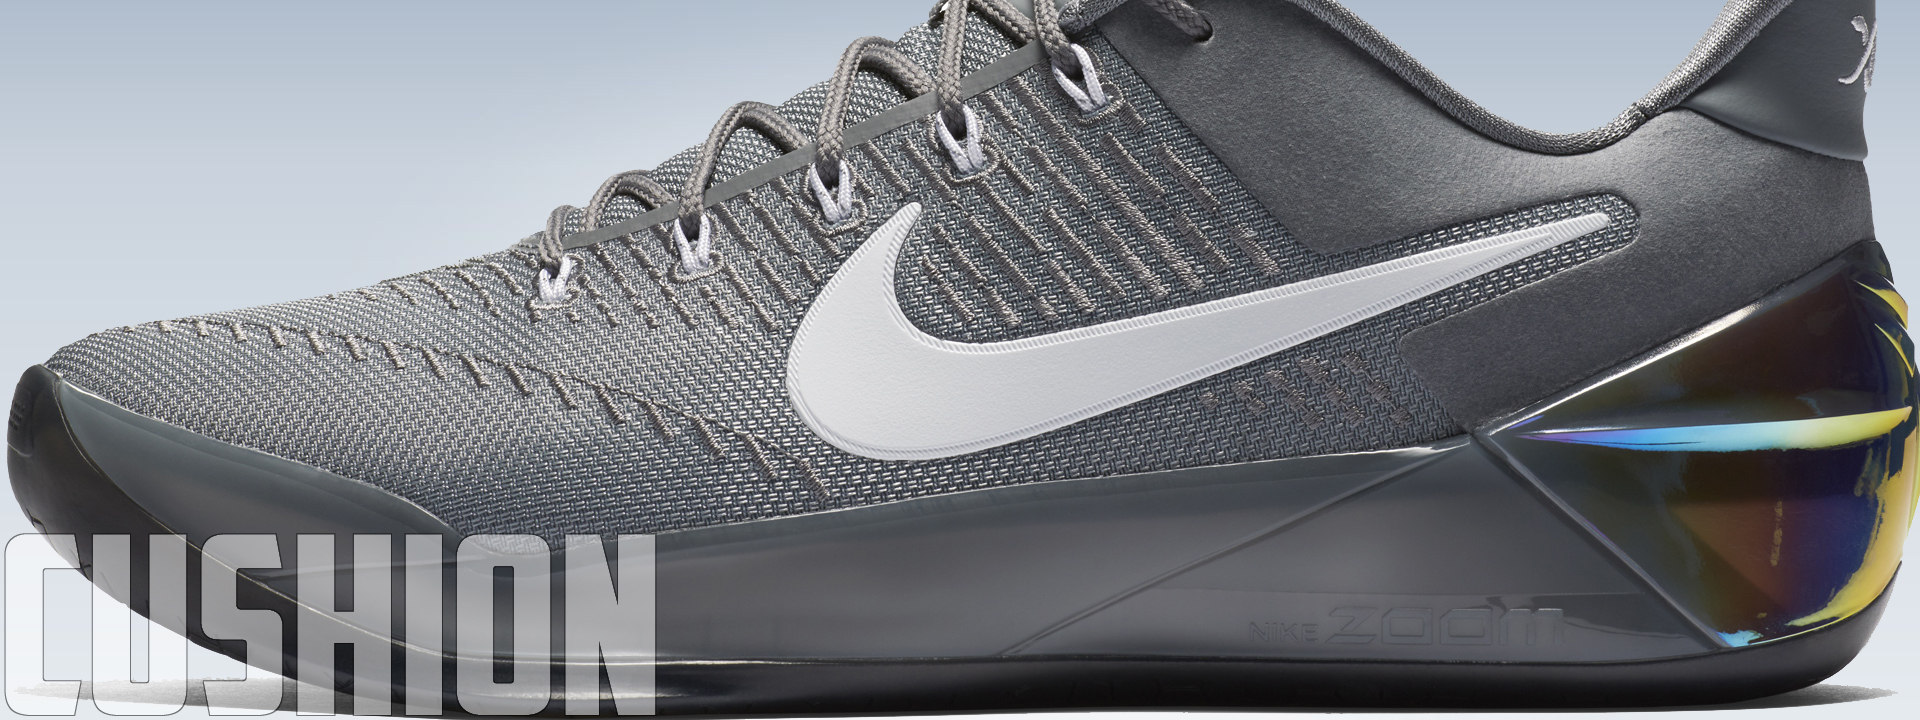 Cushion – When I initially bought the shoe I thought we'd be getting a very  similar setup to the Nike Kobe X. Not the best Kobe in terms of cushion, ...